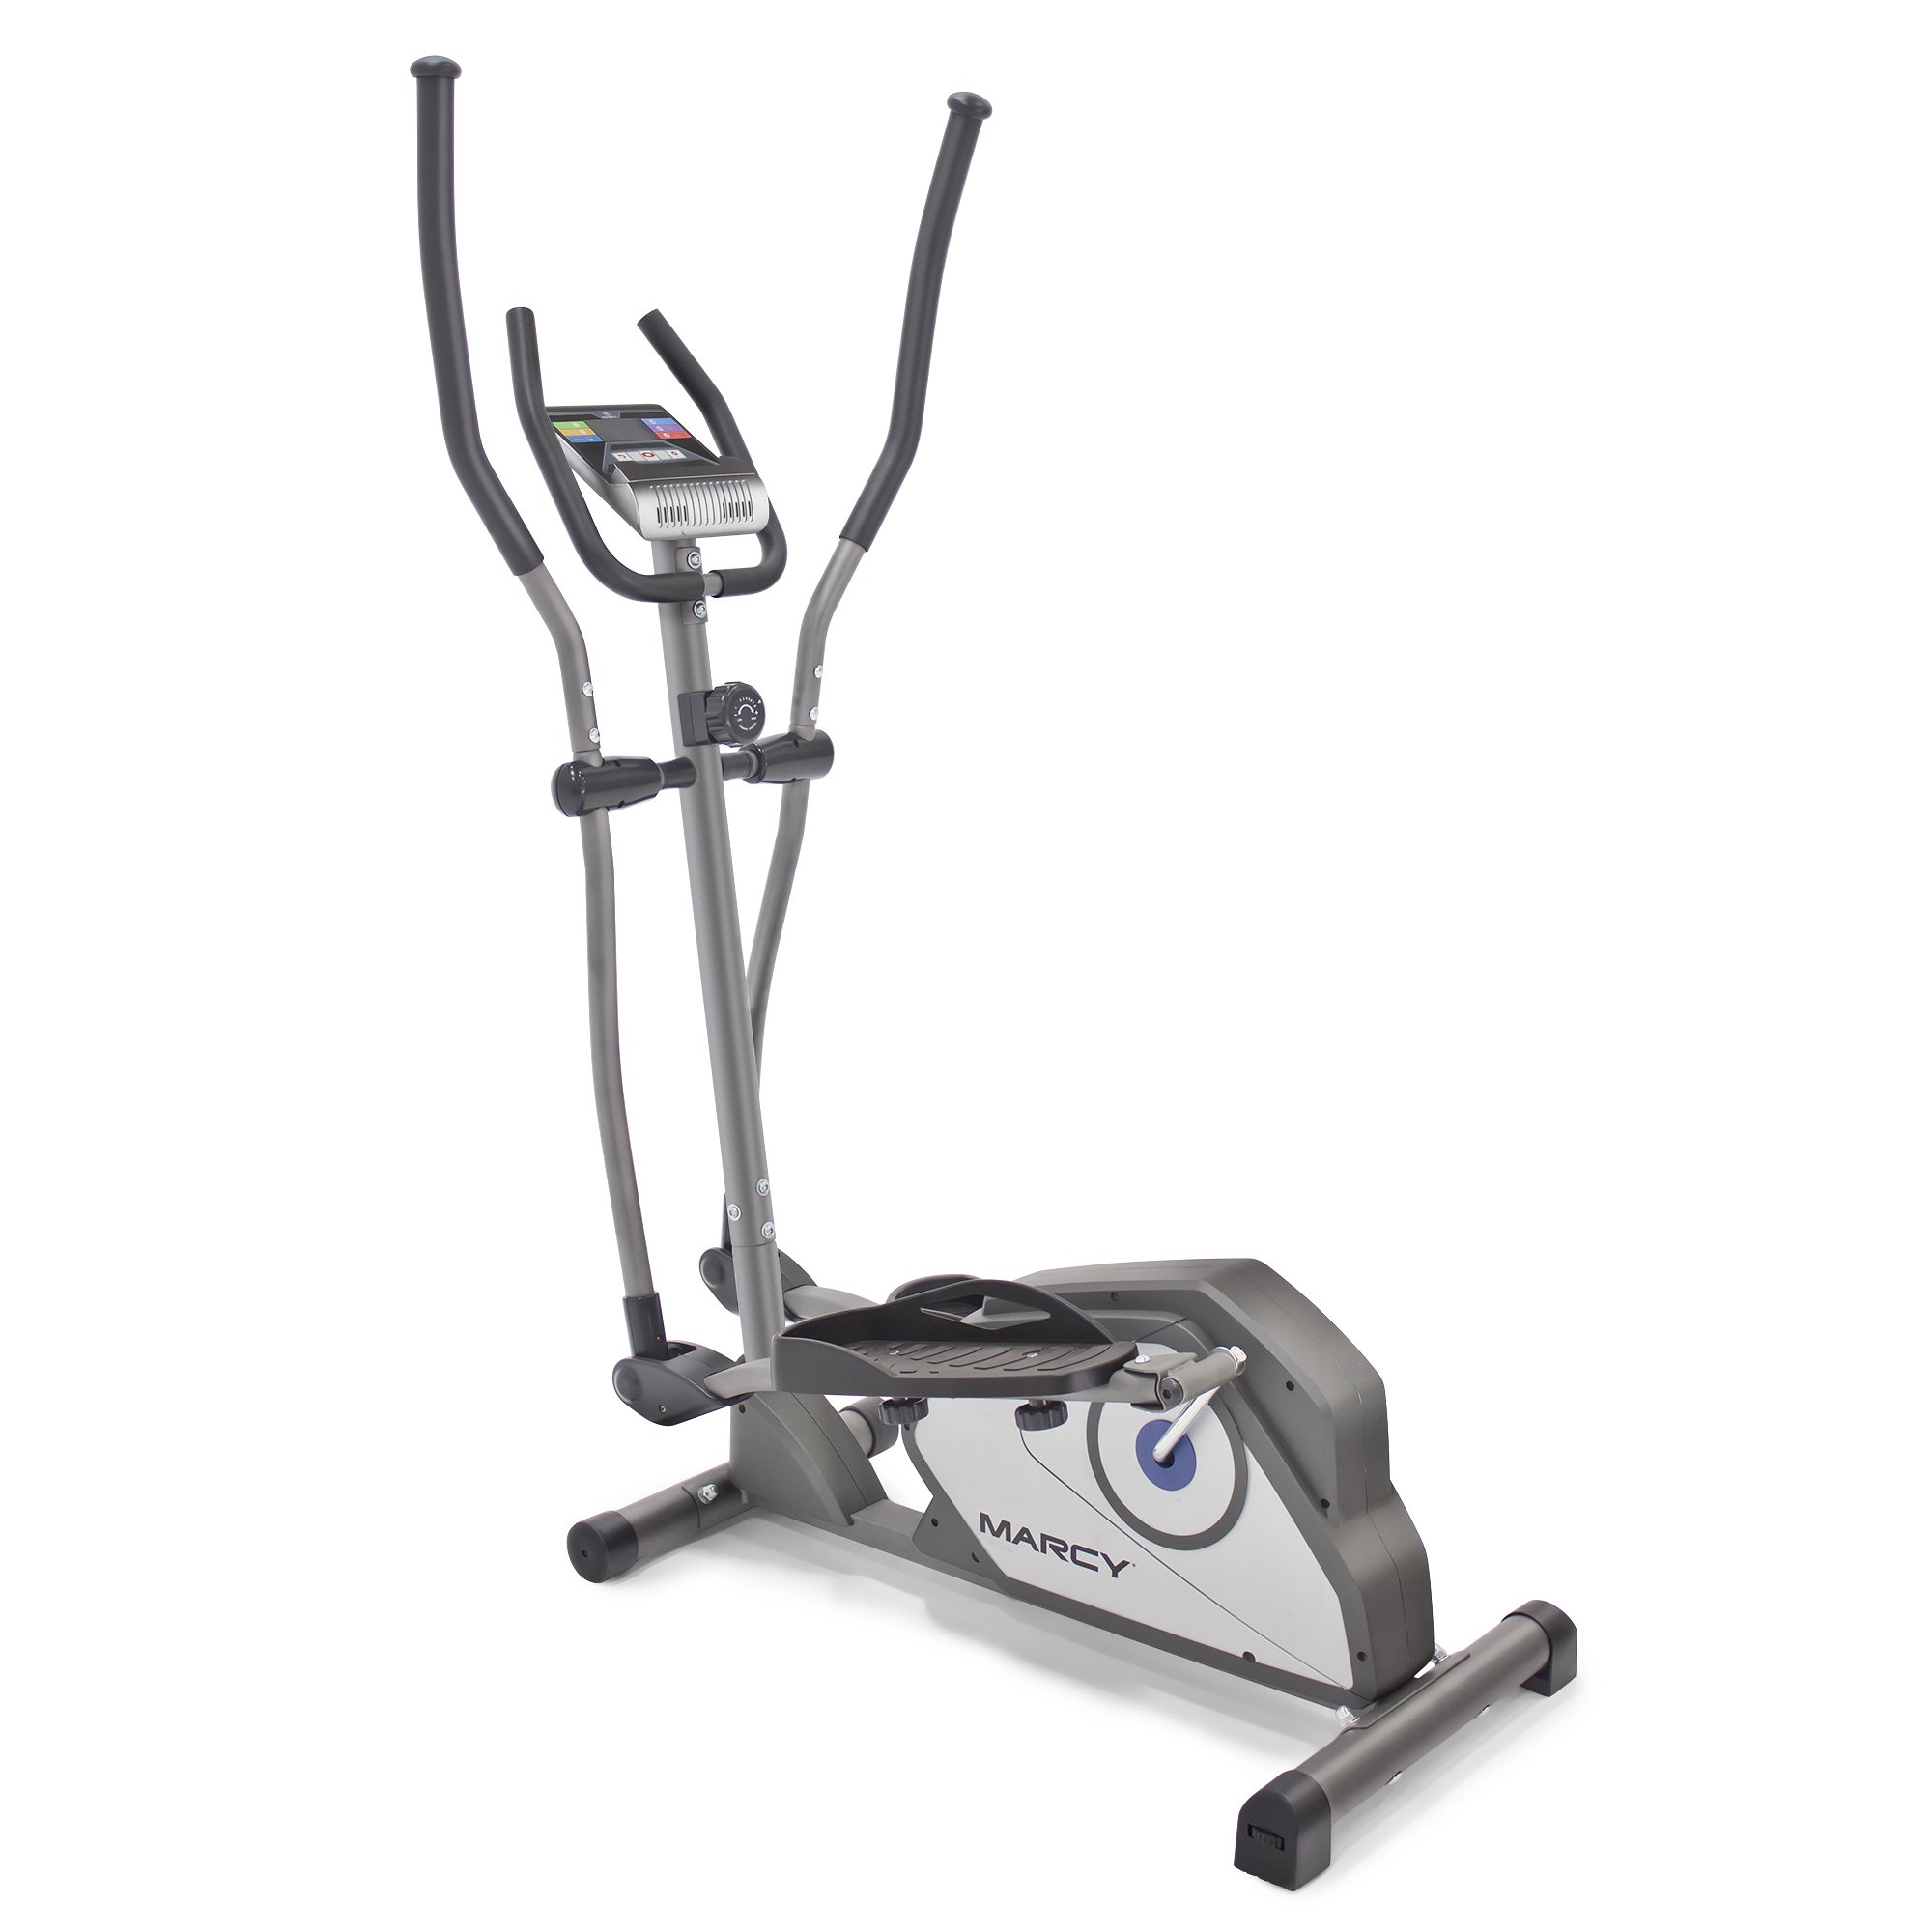 Marcy Magnetic Elliptical Trainer Cardio Workout Machine with Transport Wheels NS-40501E by Marcy